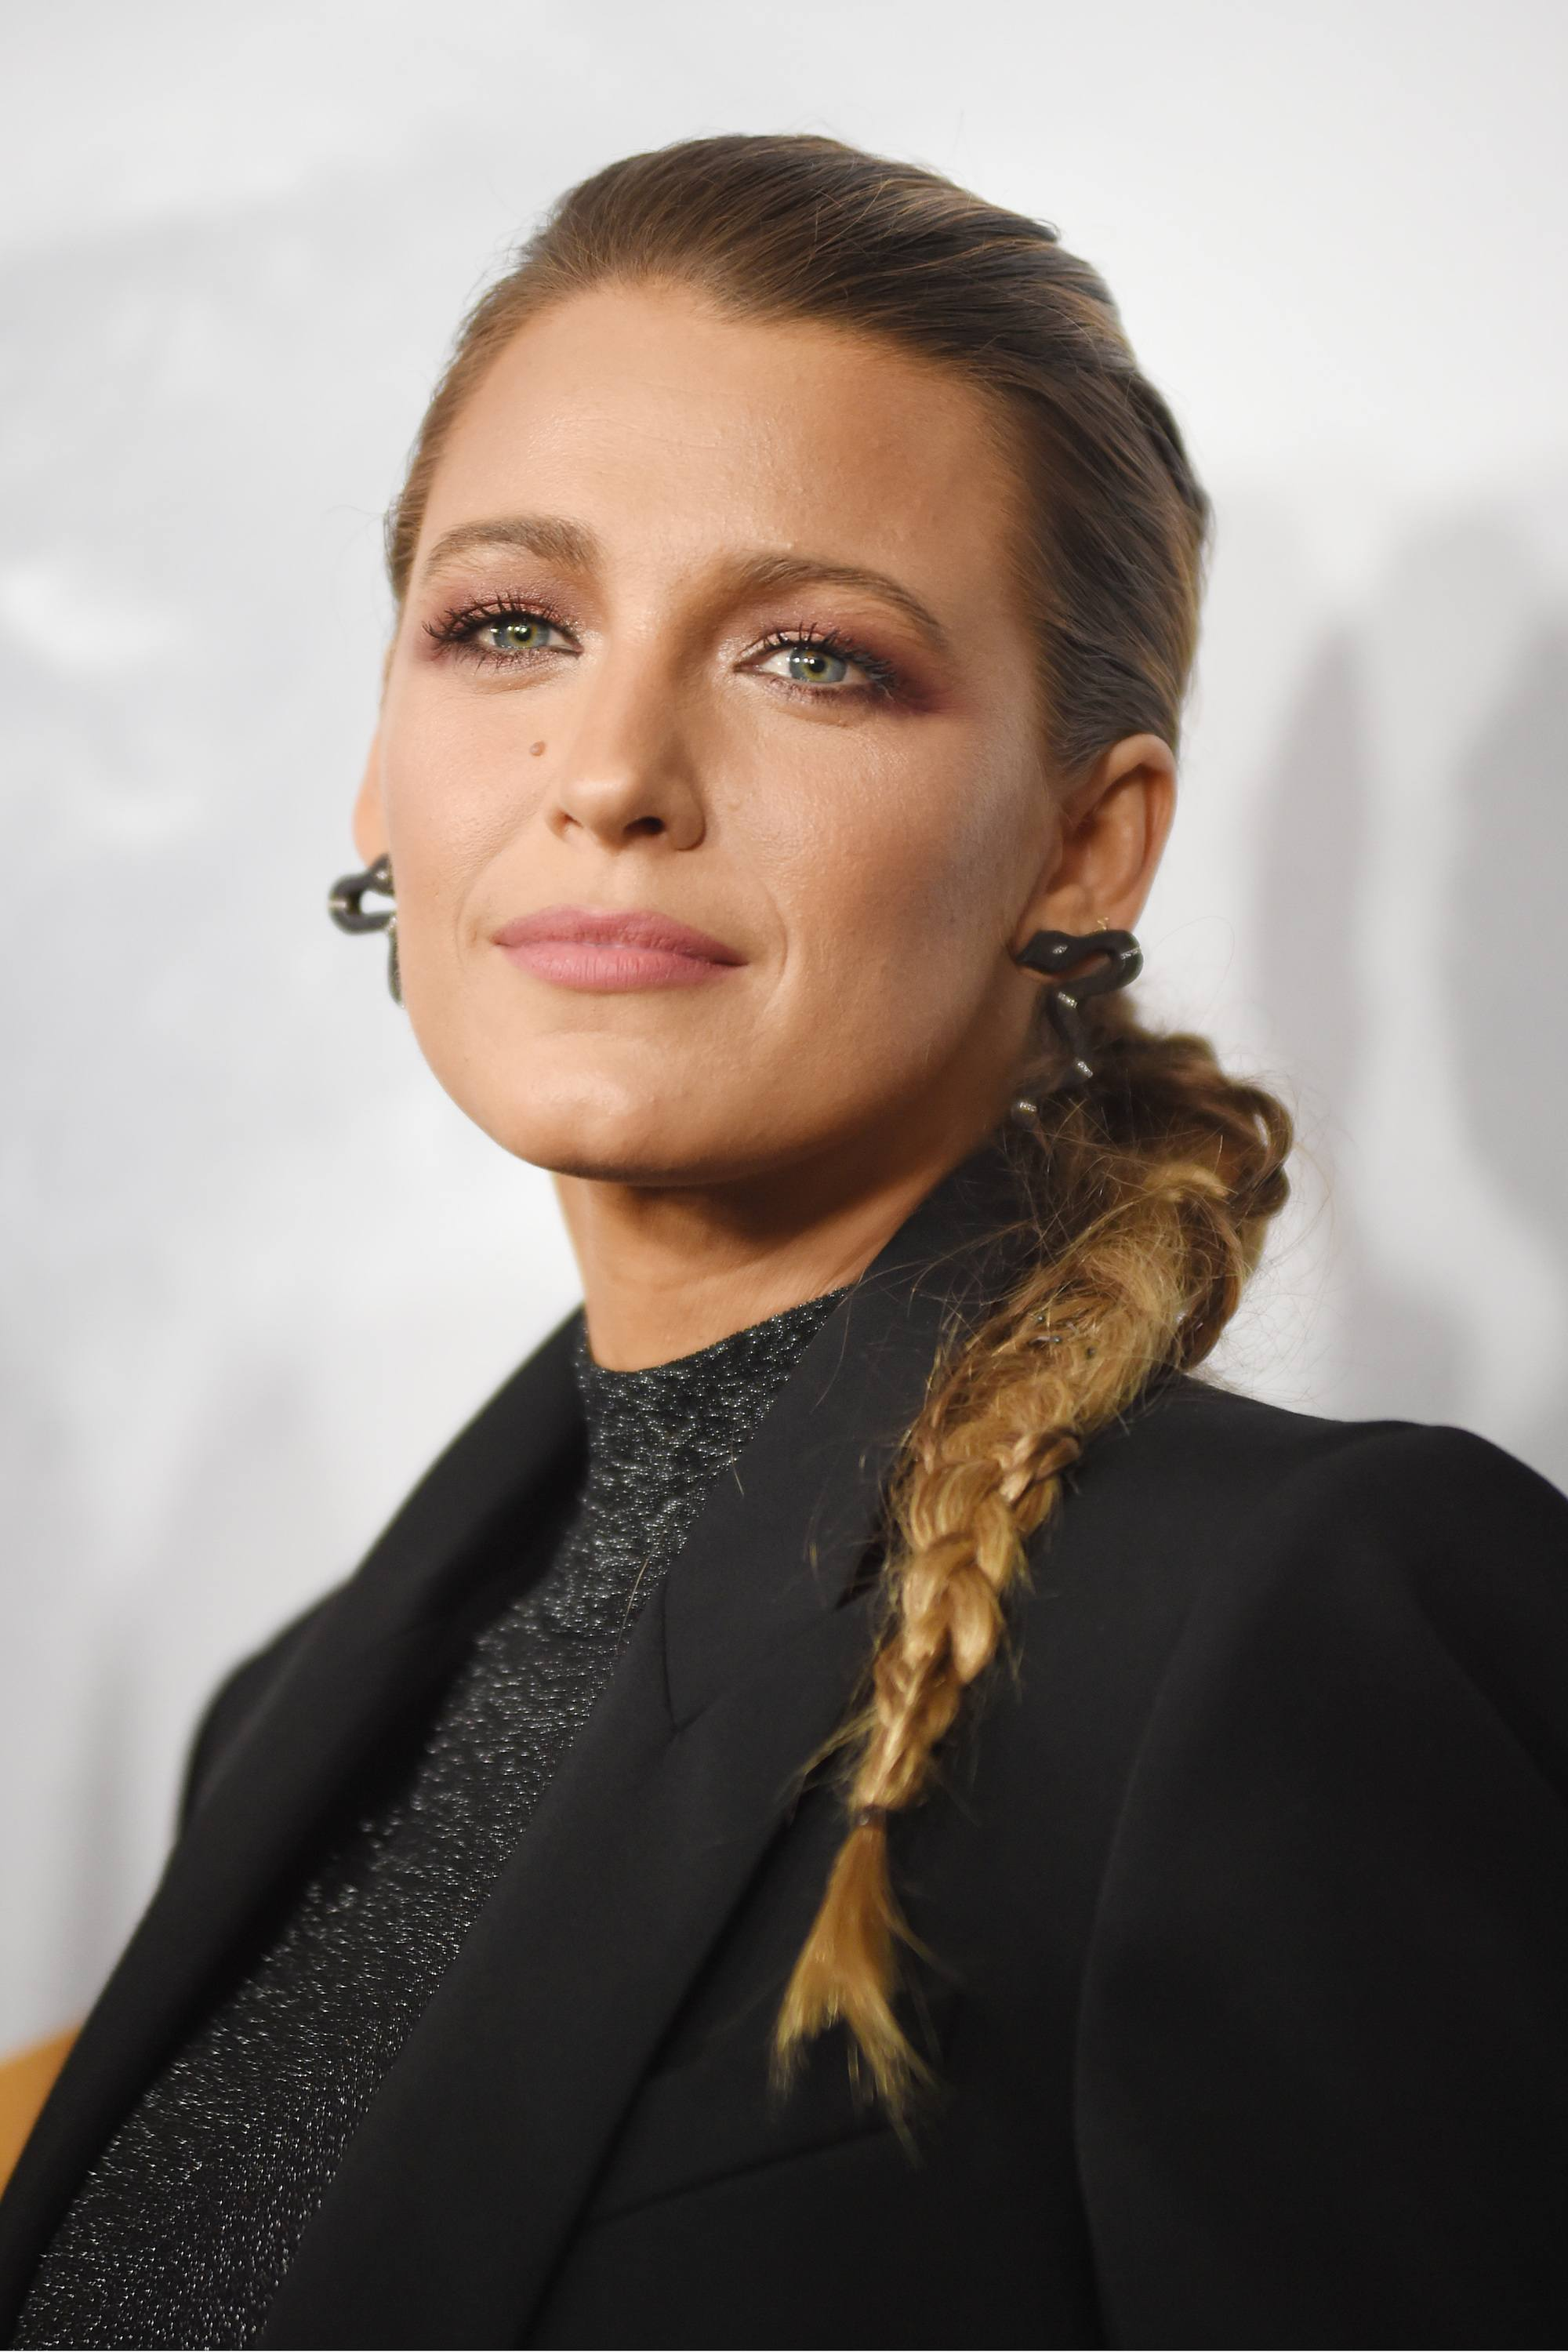 Blake Lively with golden blonde hair styled into a side braid, wearing all black on the red carpet